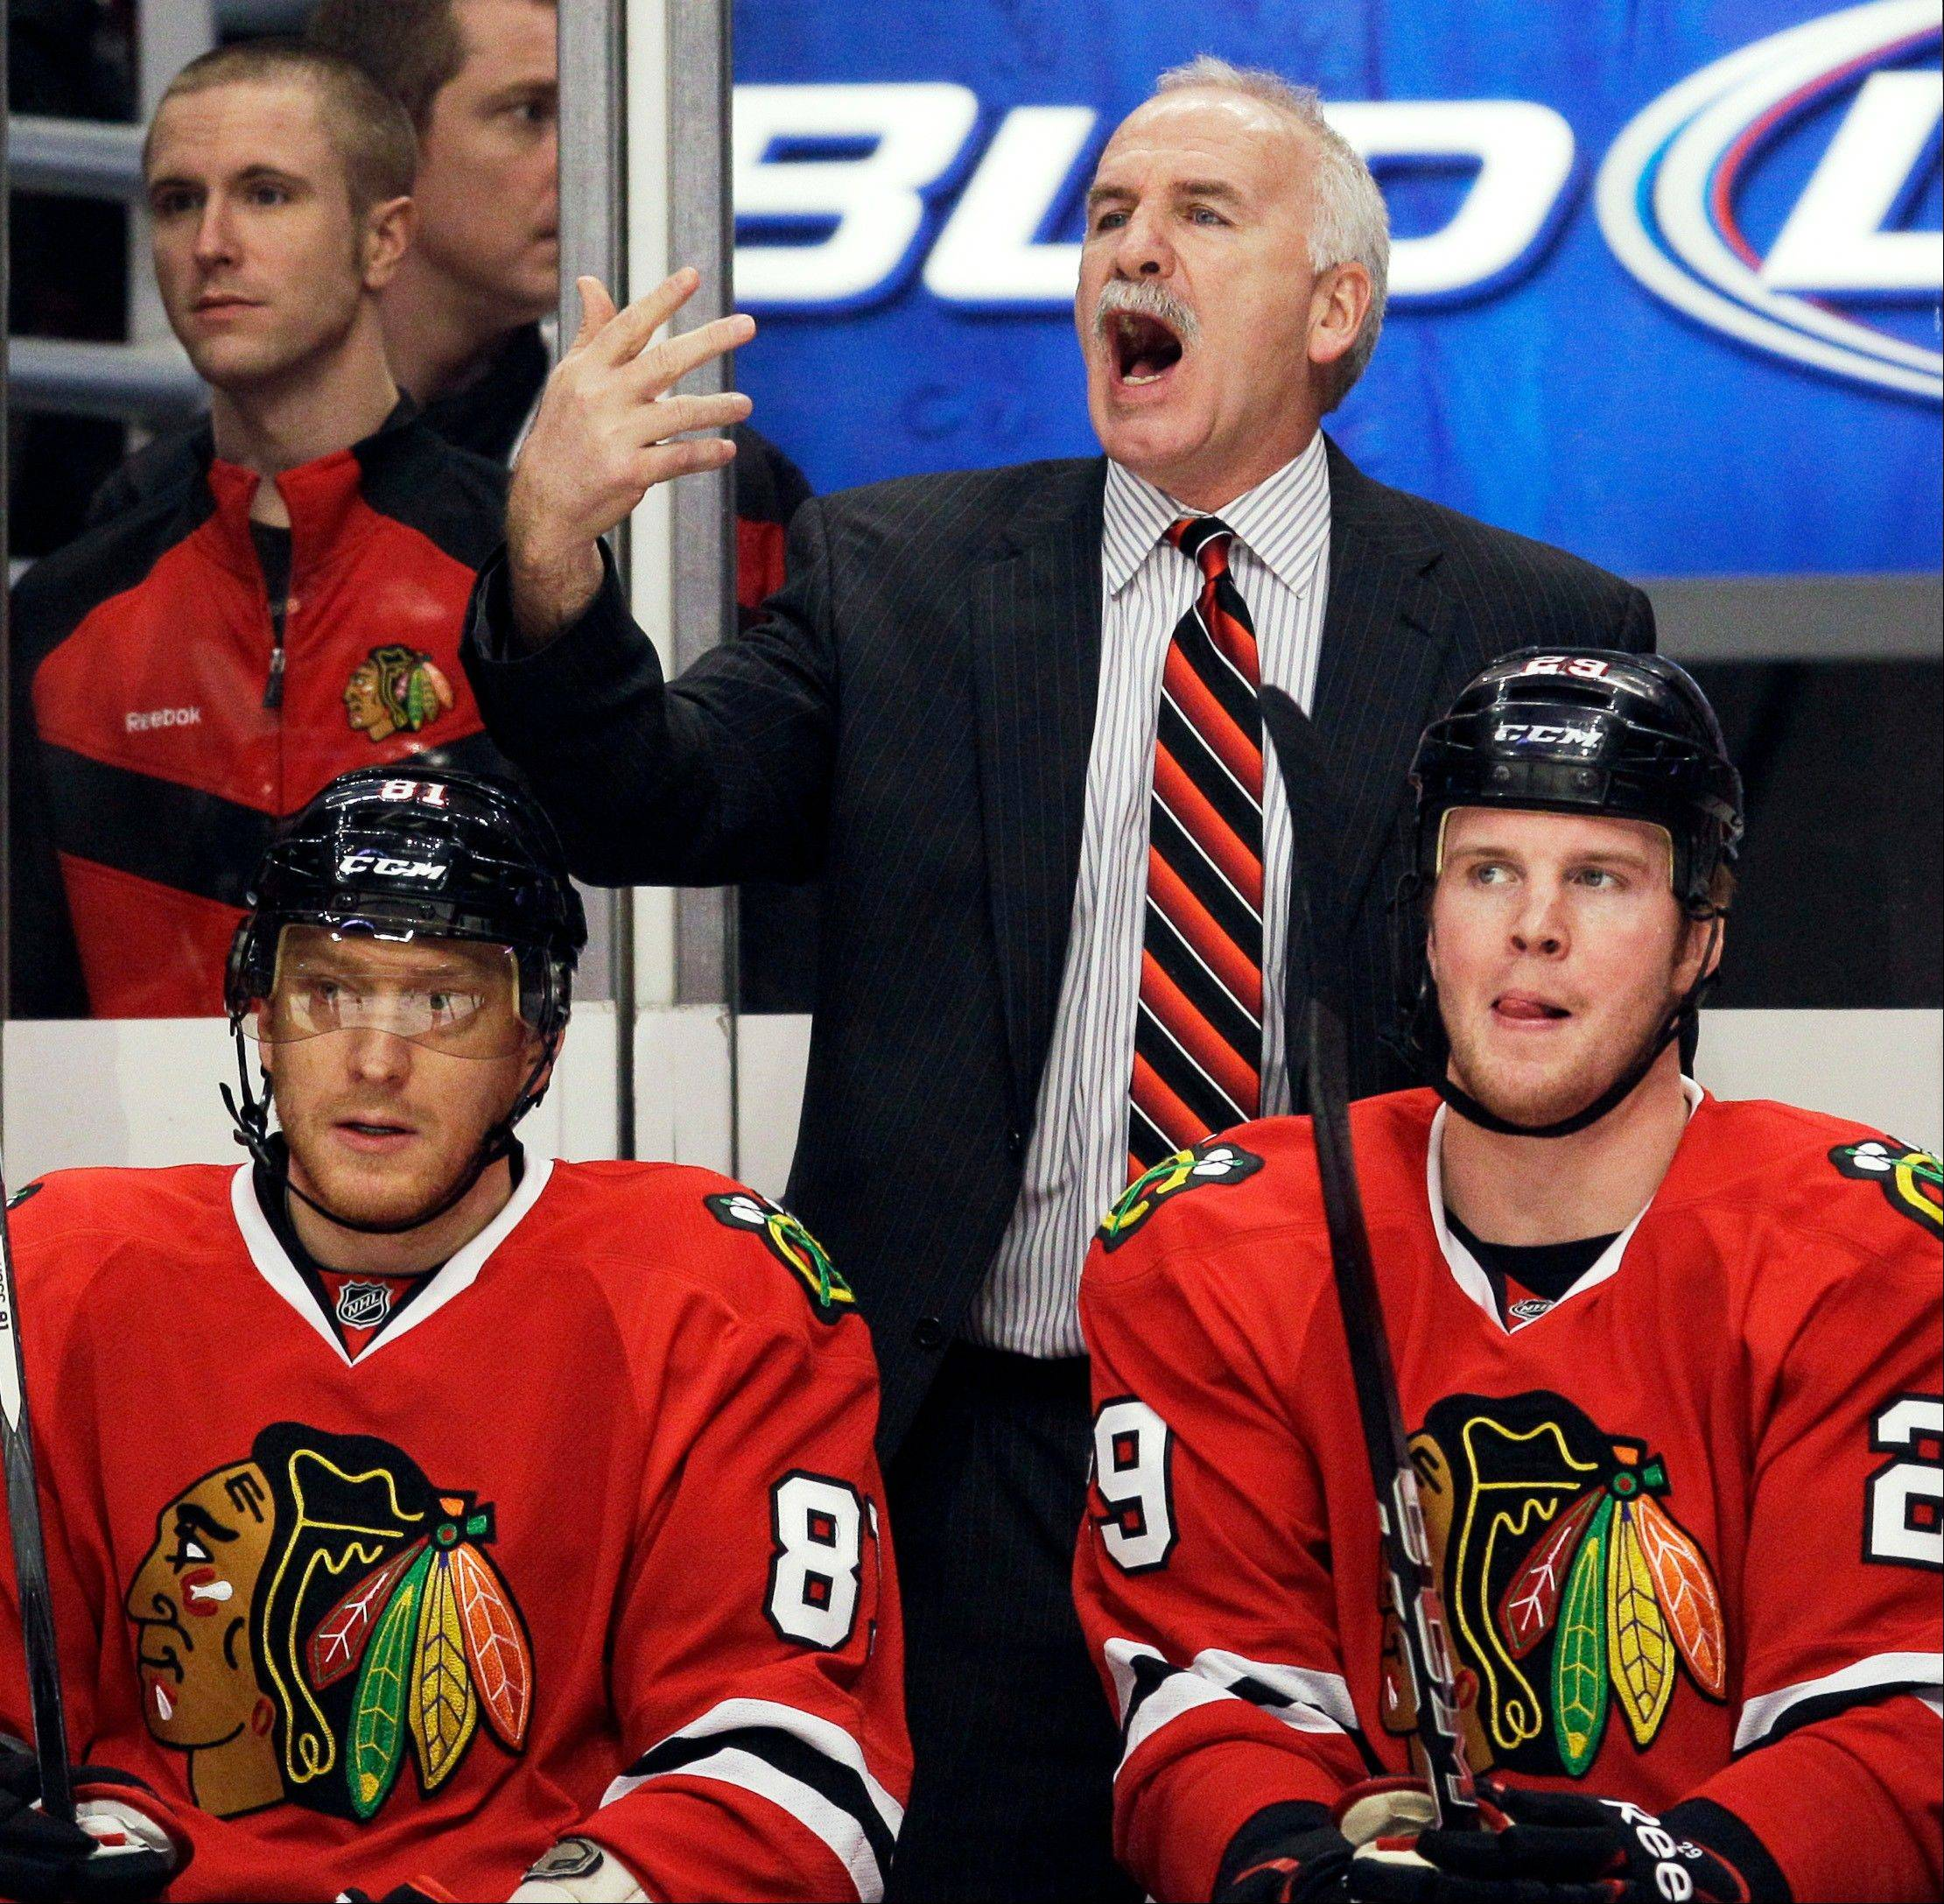 Blackhawks coach Joel Quenneville said both Kings goals Wednesday night should have been disallowed.